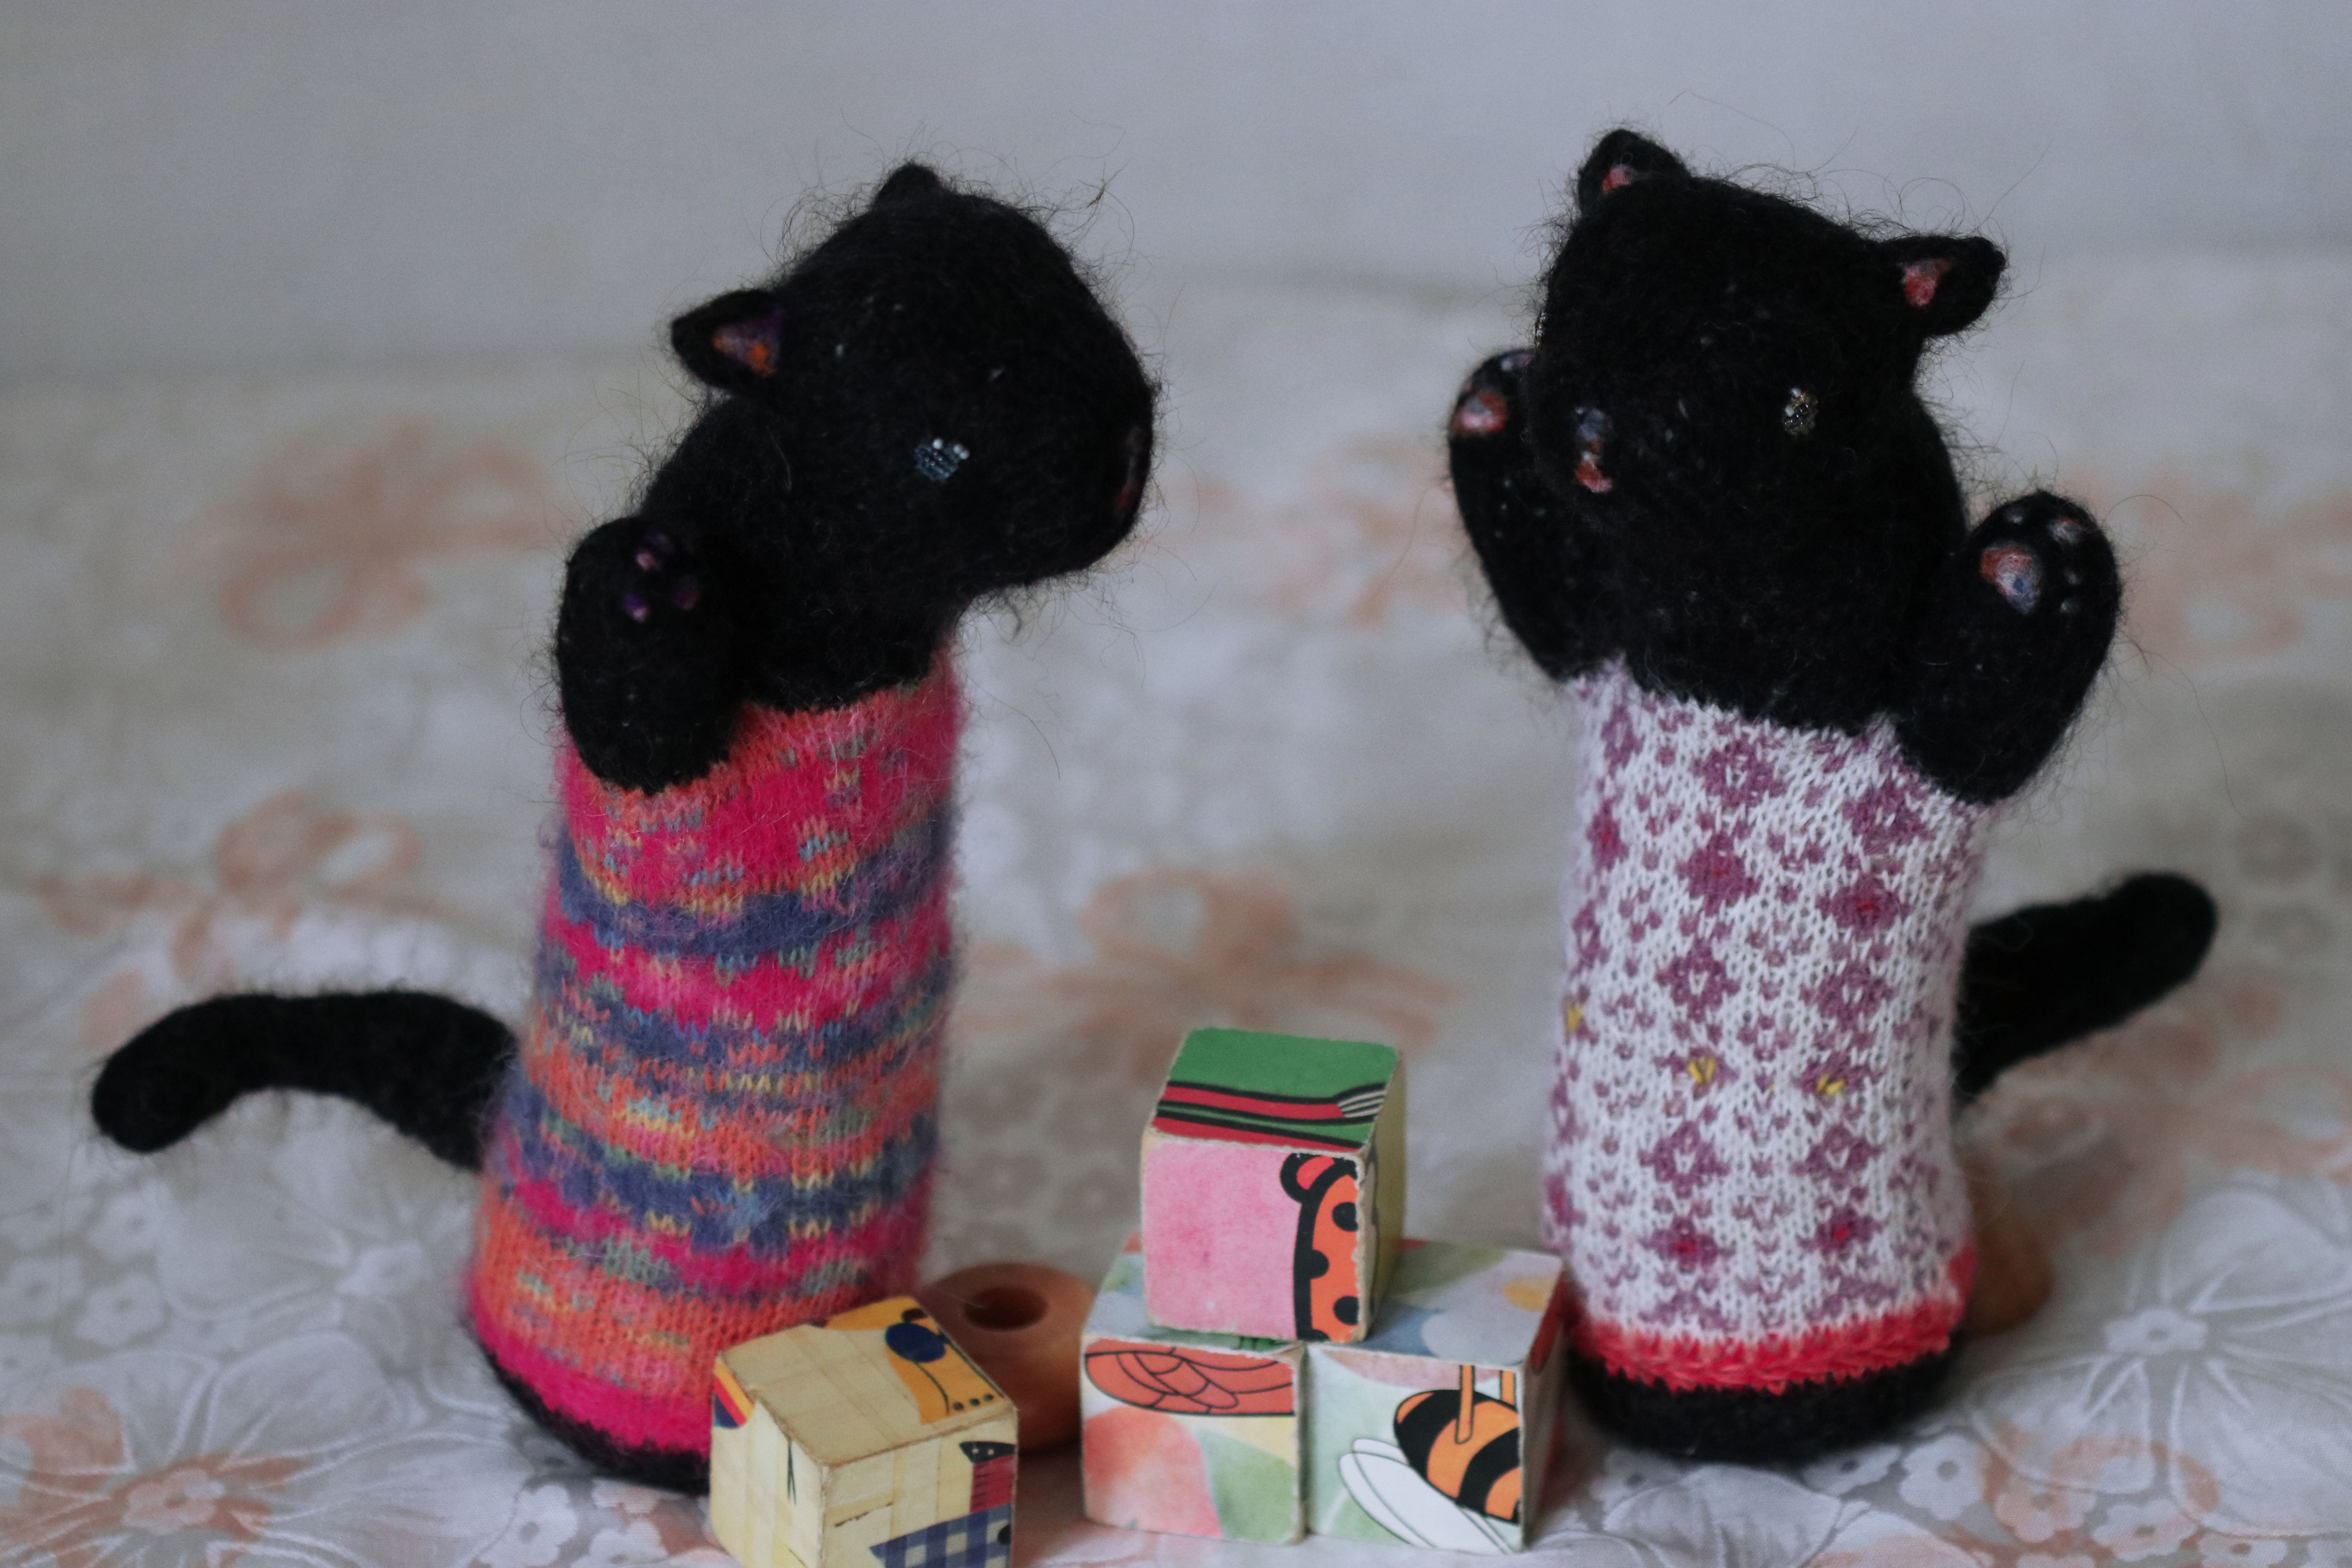 toy cat soft felting knitted design animal plush stuffed black sculpture kitty lover needle orgonite